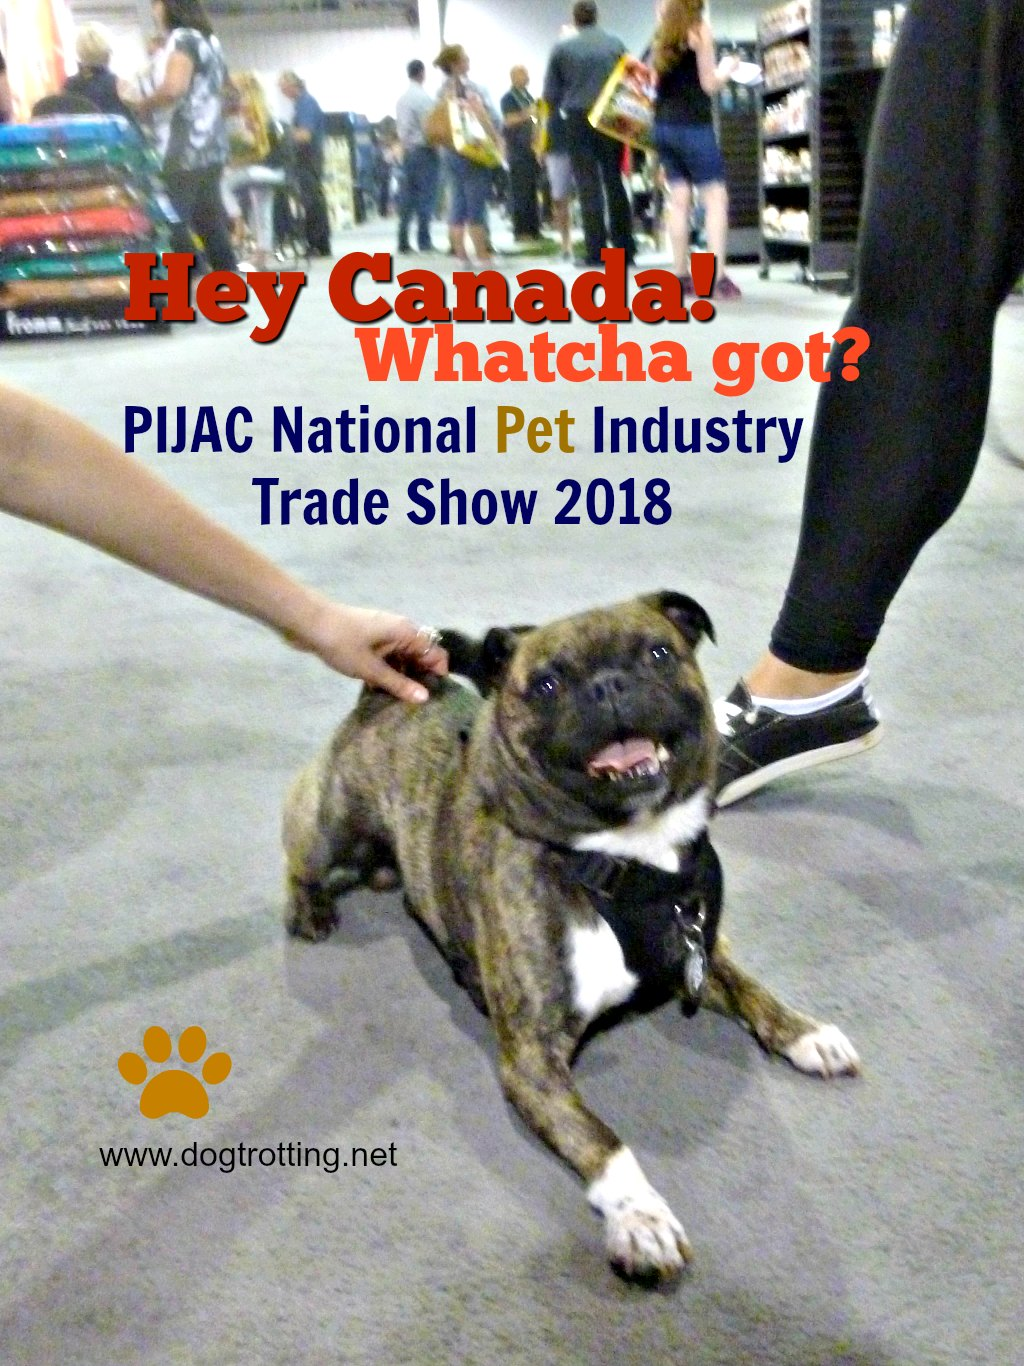 Oh Canada … PIJAC National Pet Industry Trade Show. Woof.